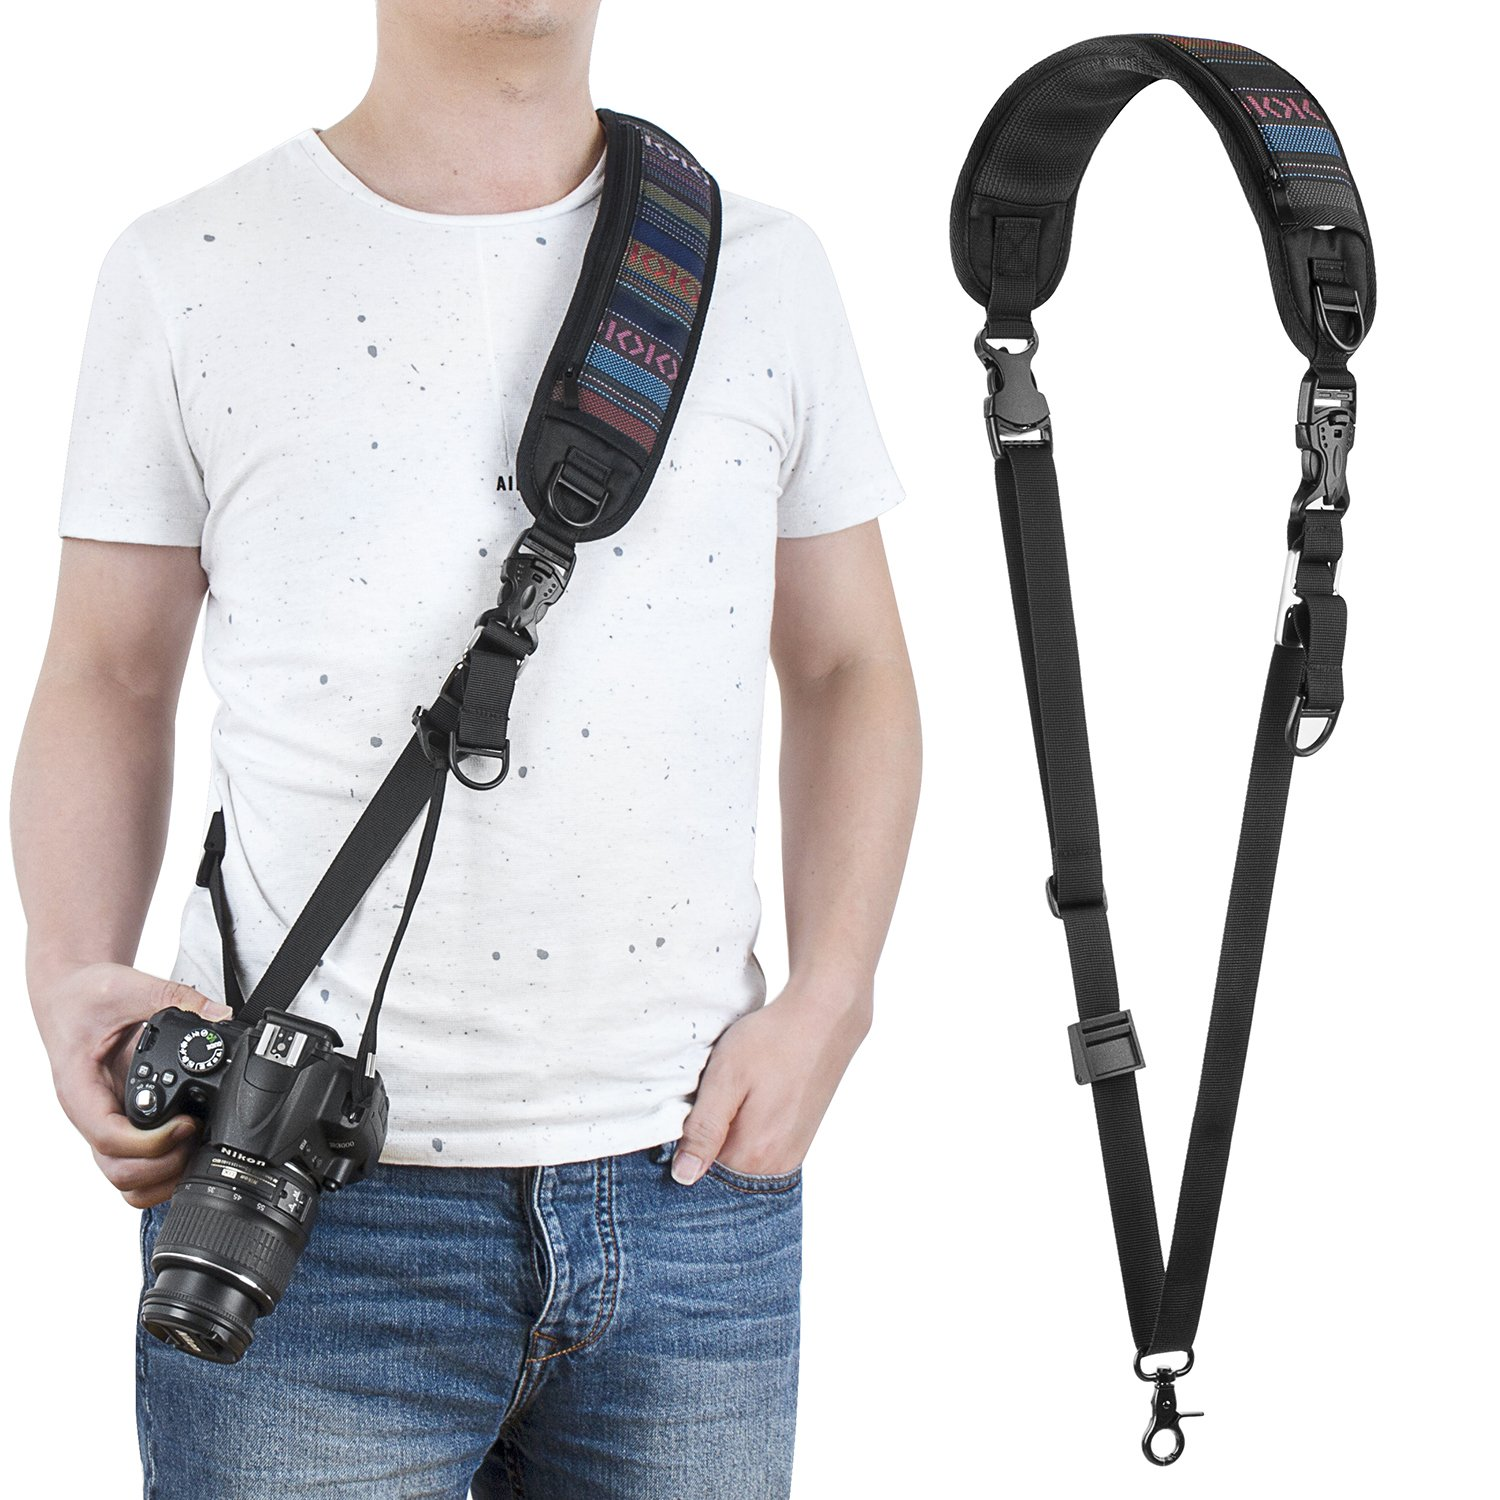 52c8e8d8b62 Amazon.com   waka Camera Neck Strap with Quick Release and Safety ...